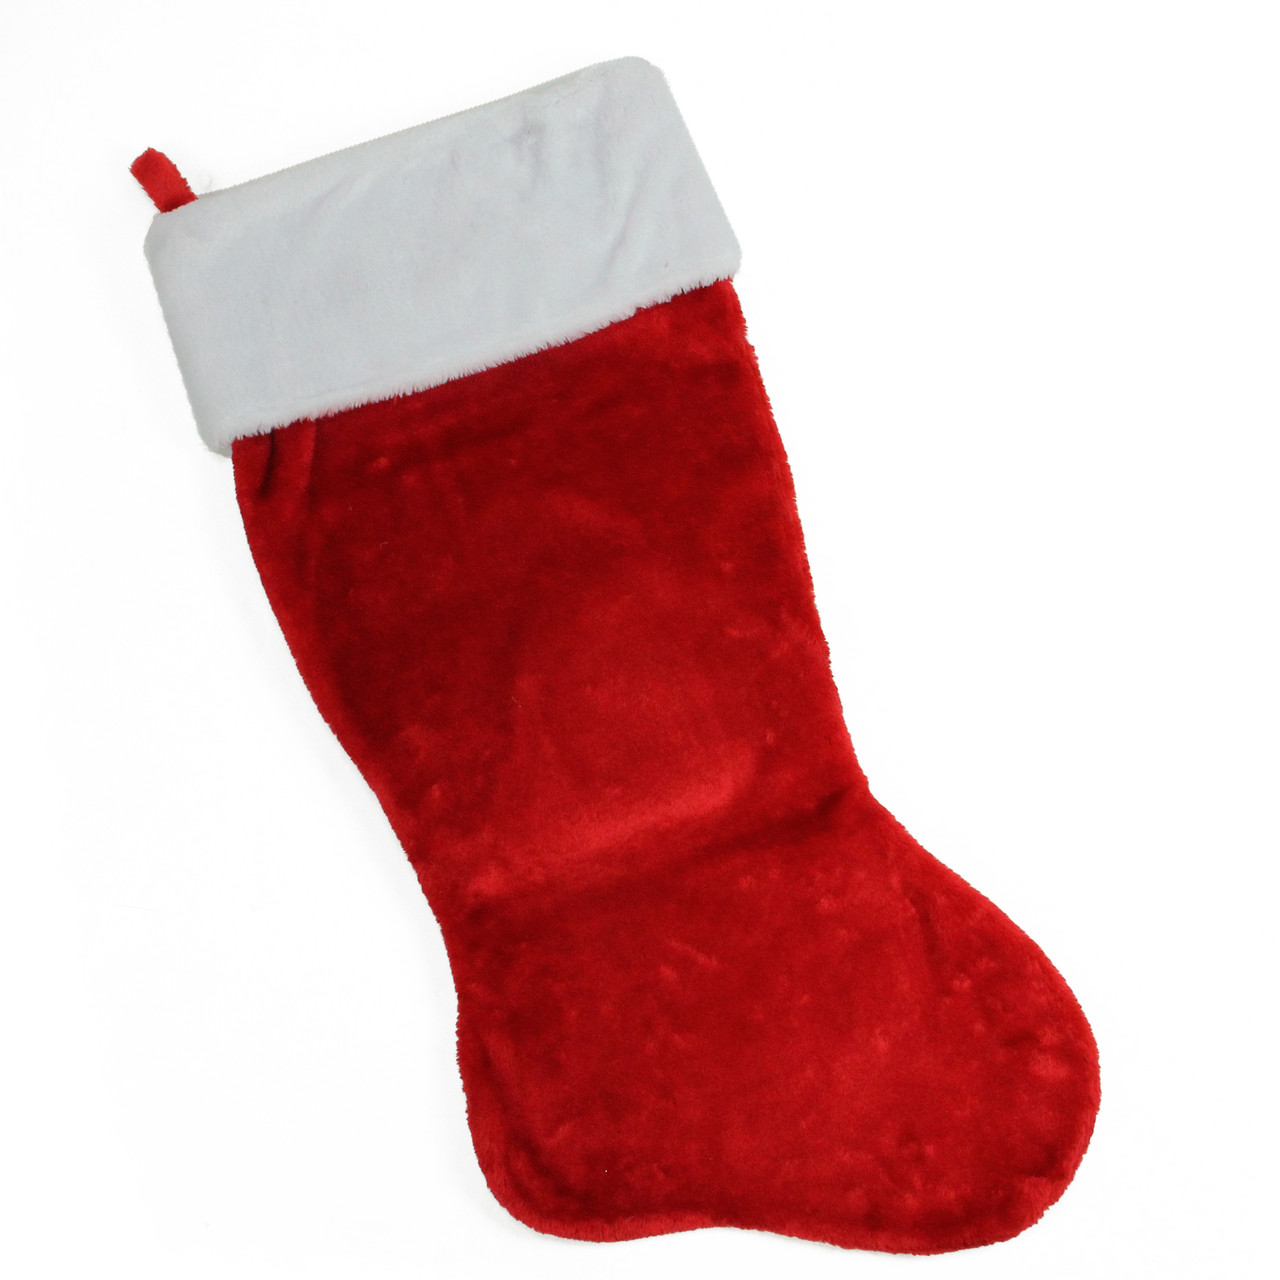 35 traditional red with white cuff decorative plush christmas stocking 32266839 - Red And White Christmas Stockings